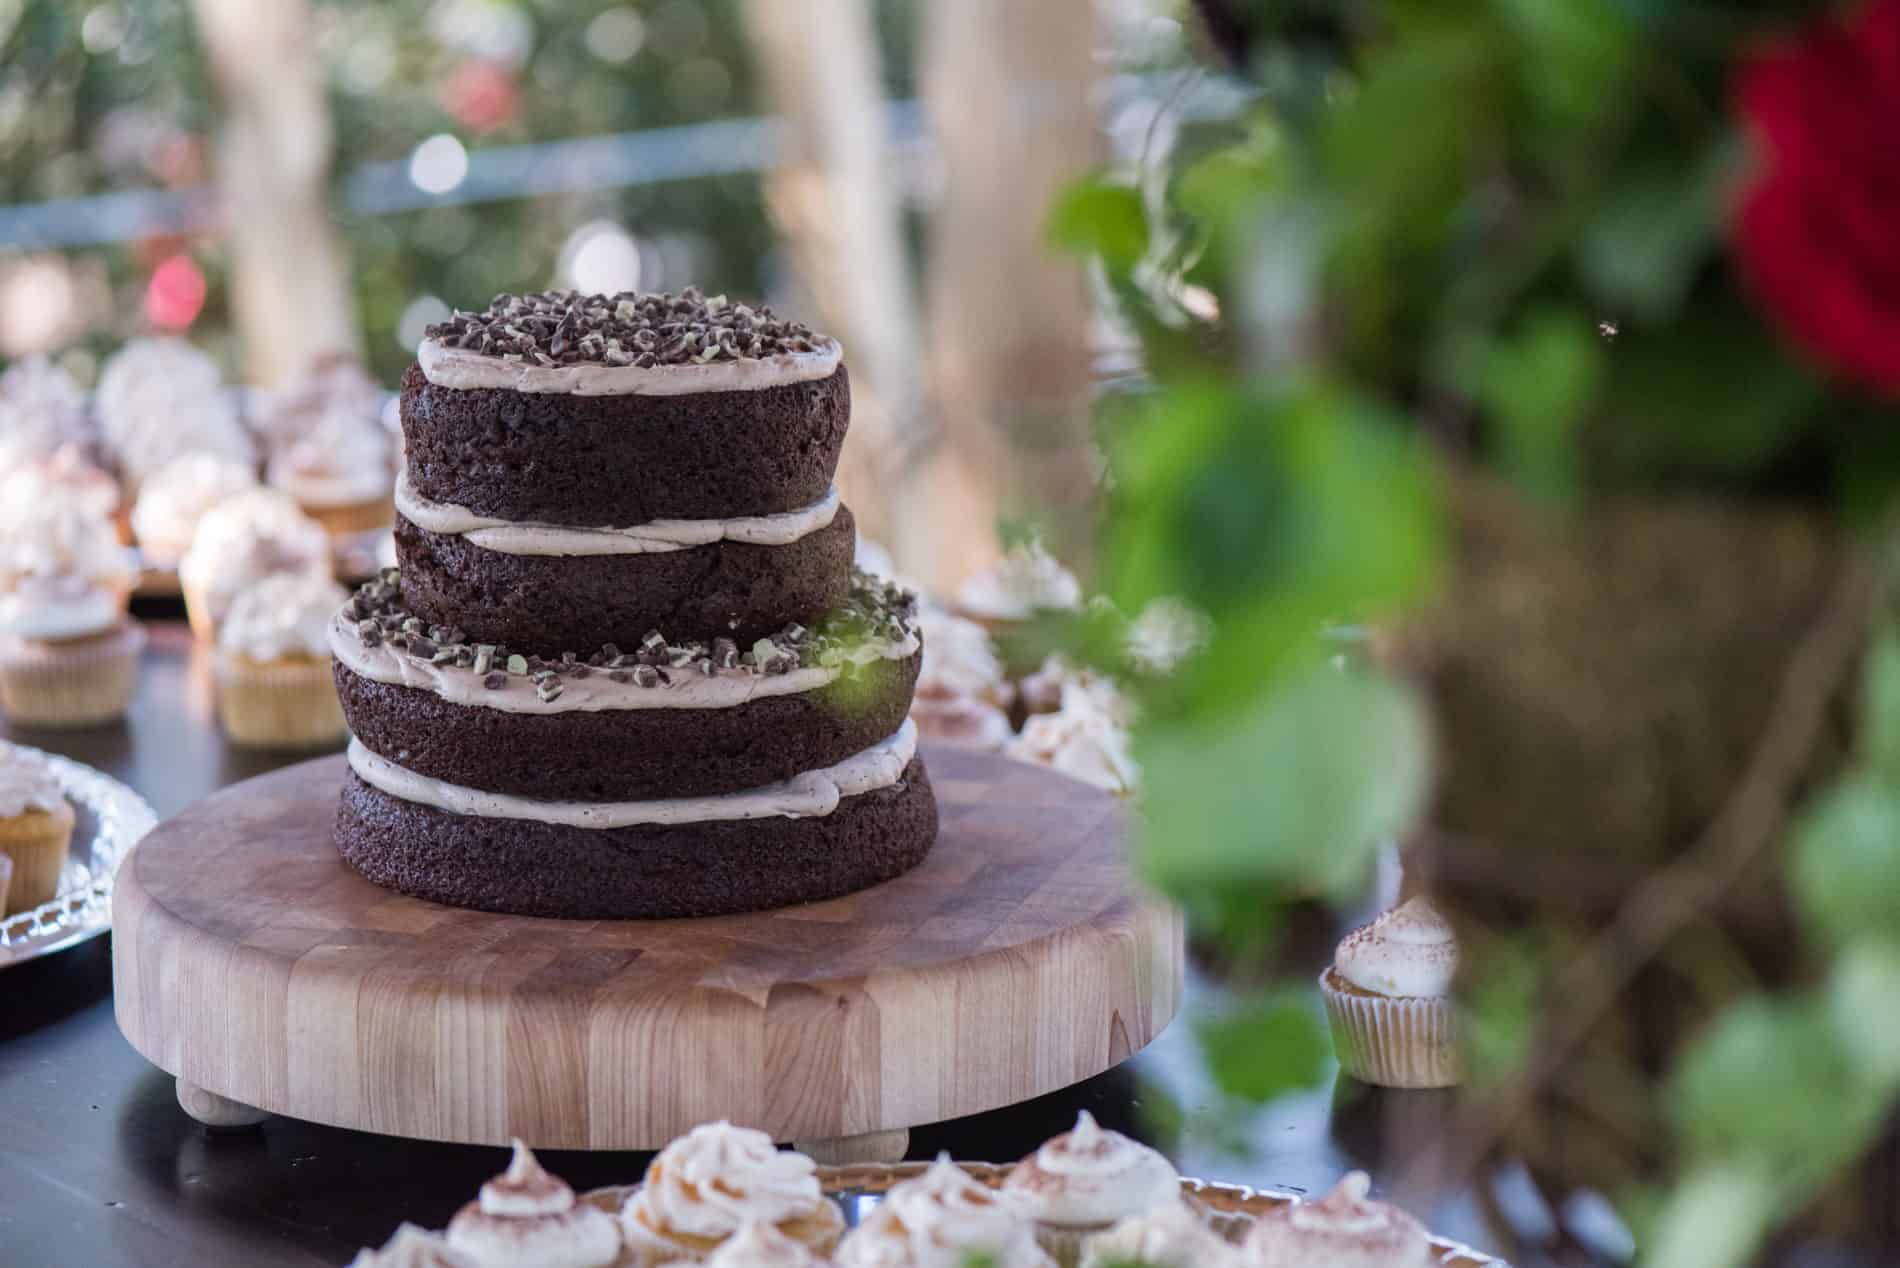 Fall Wedding Themes show desserts in photos